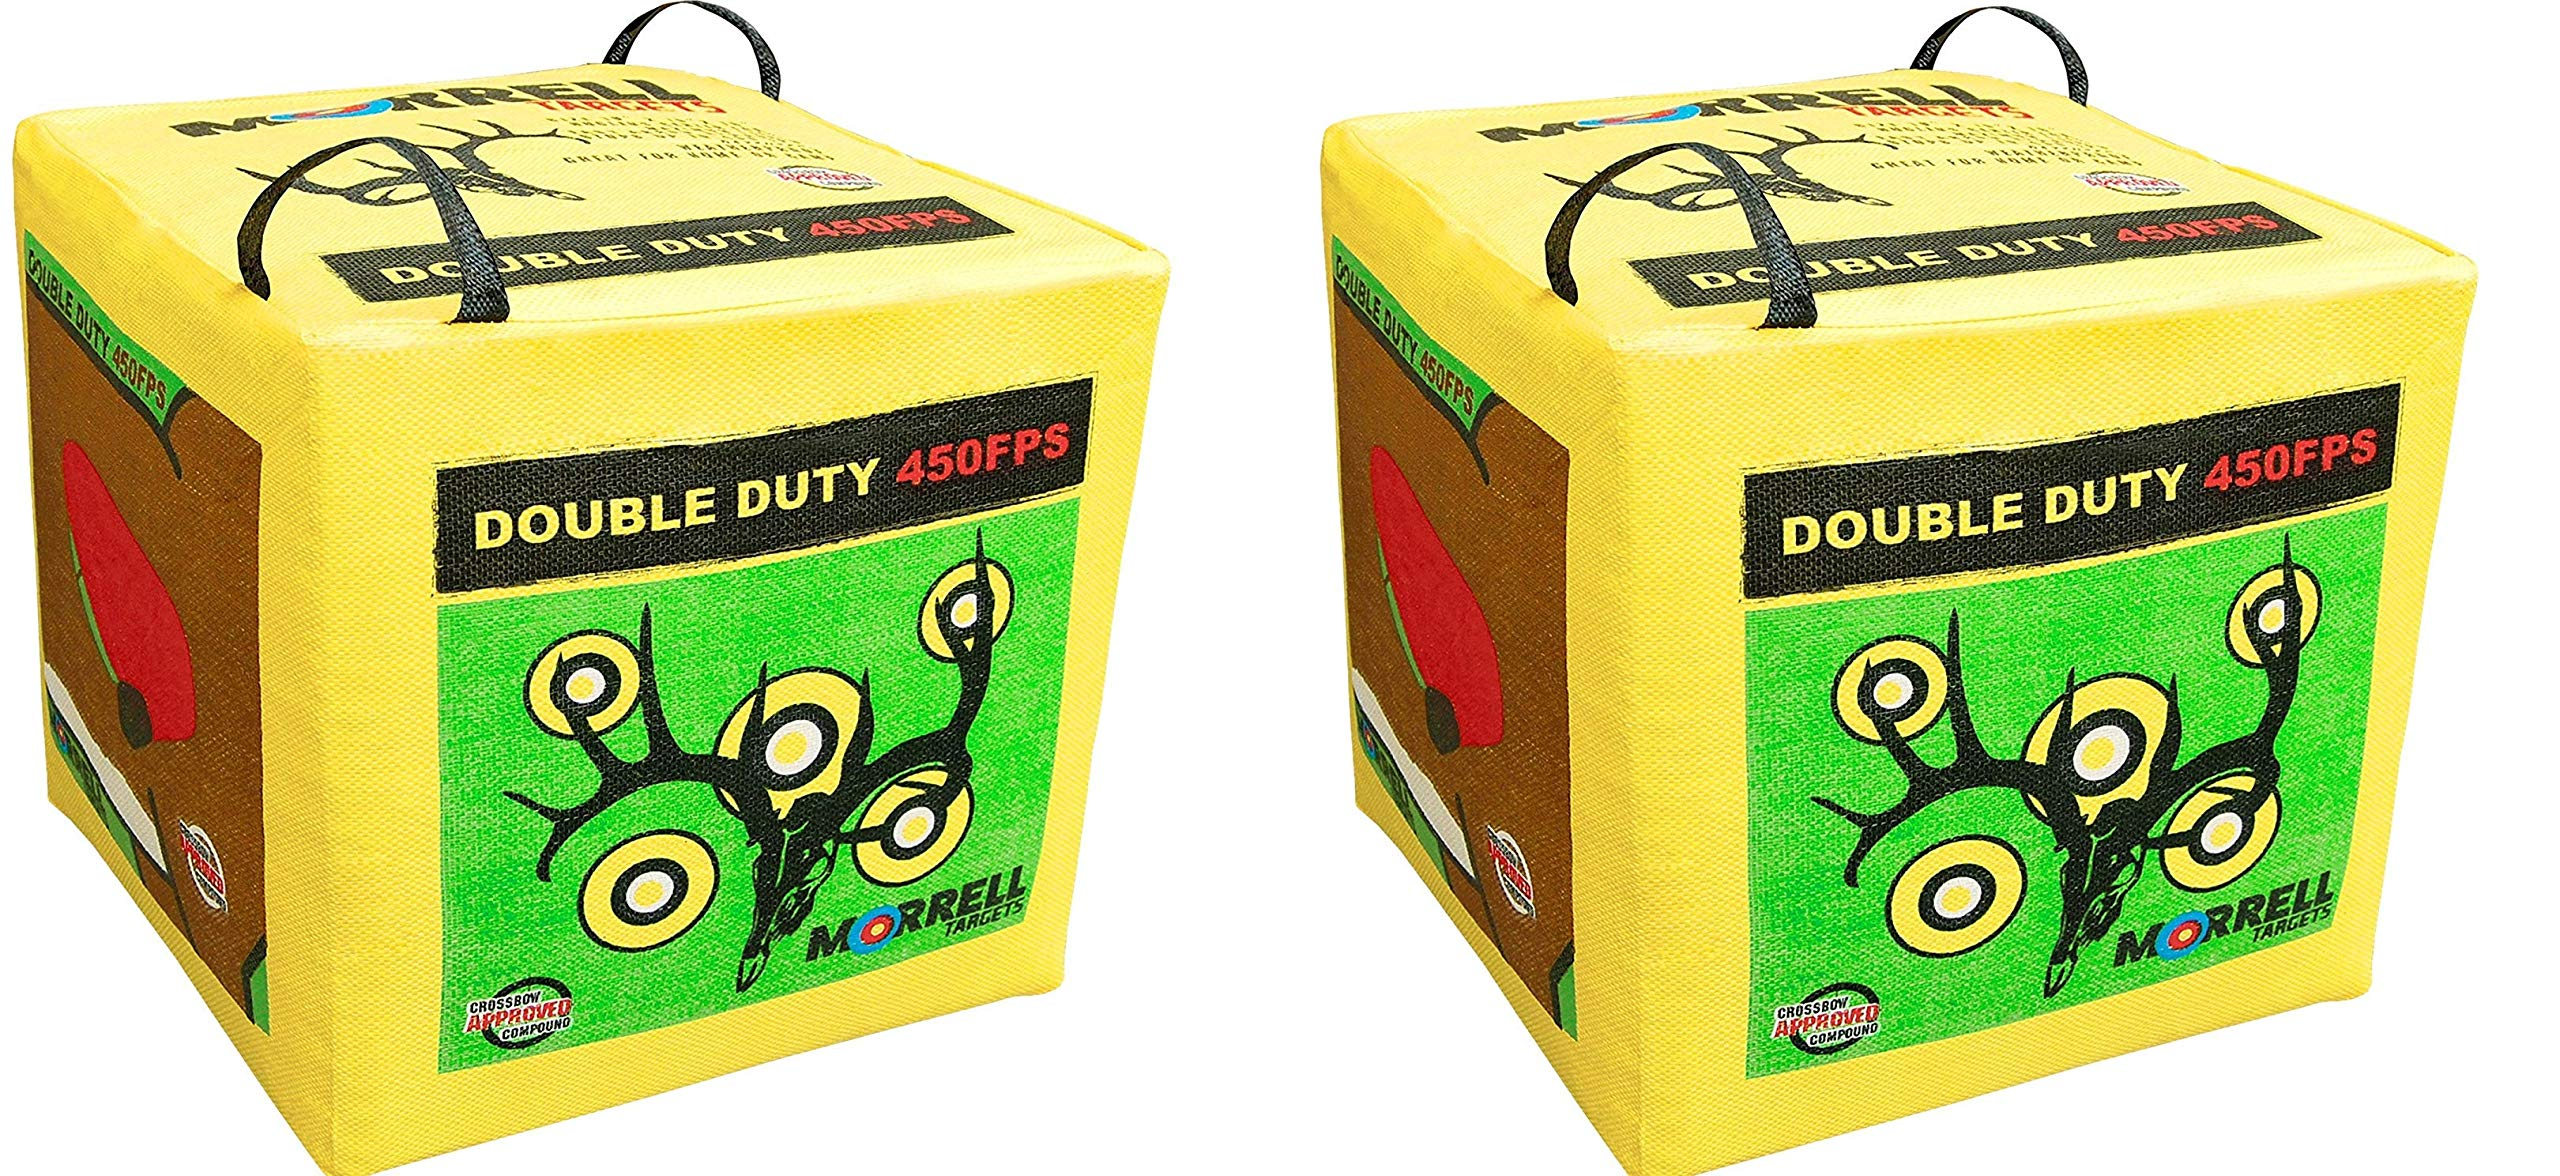 Morrell Double Duty 450FPS Field Point Bag Archery Target - for Crossbows, Compounds, Traditional Bows and Airbows (2-Pack) by Morrell